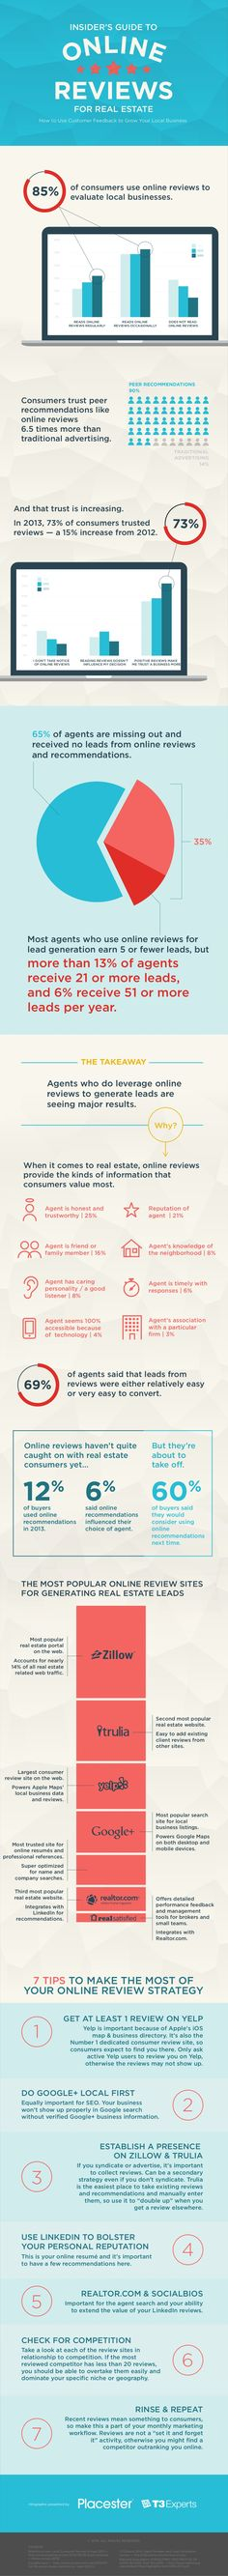 Insiders Guide To Customer Reviews for Real Estate & Local Businesses by Placester via slideshare